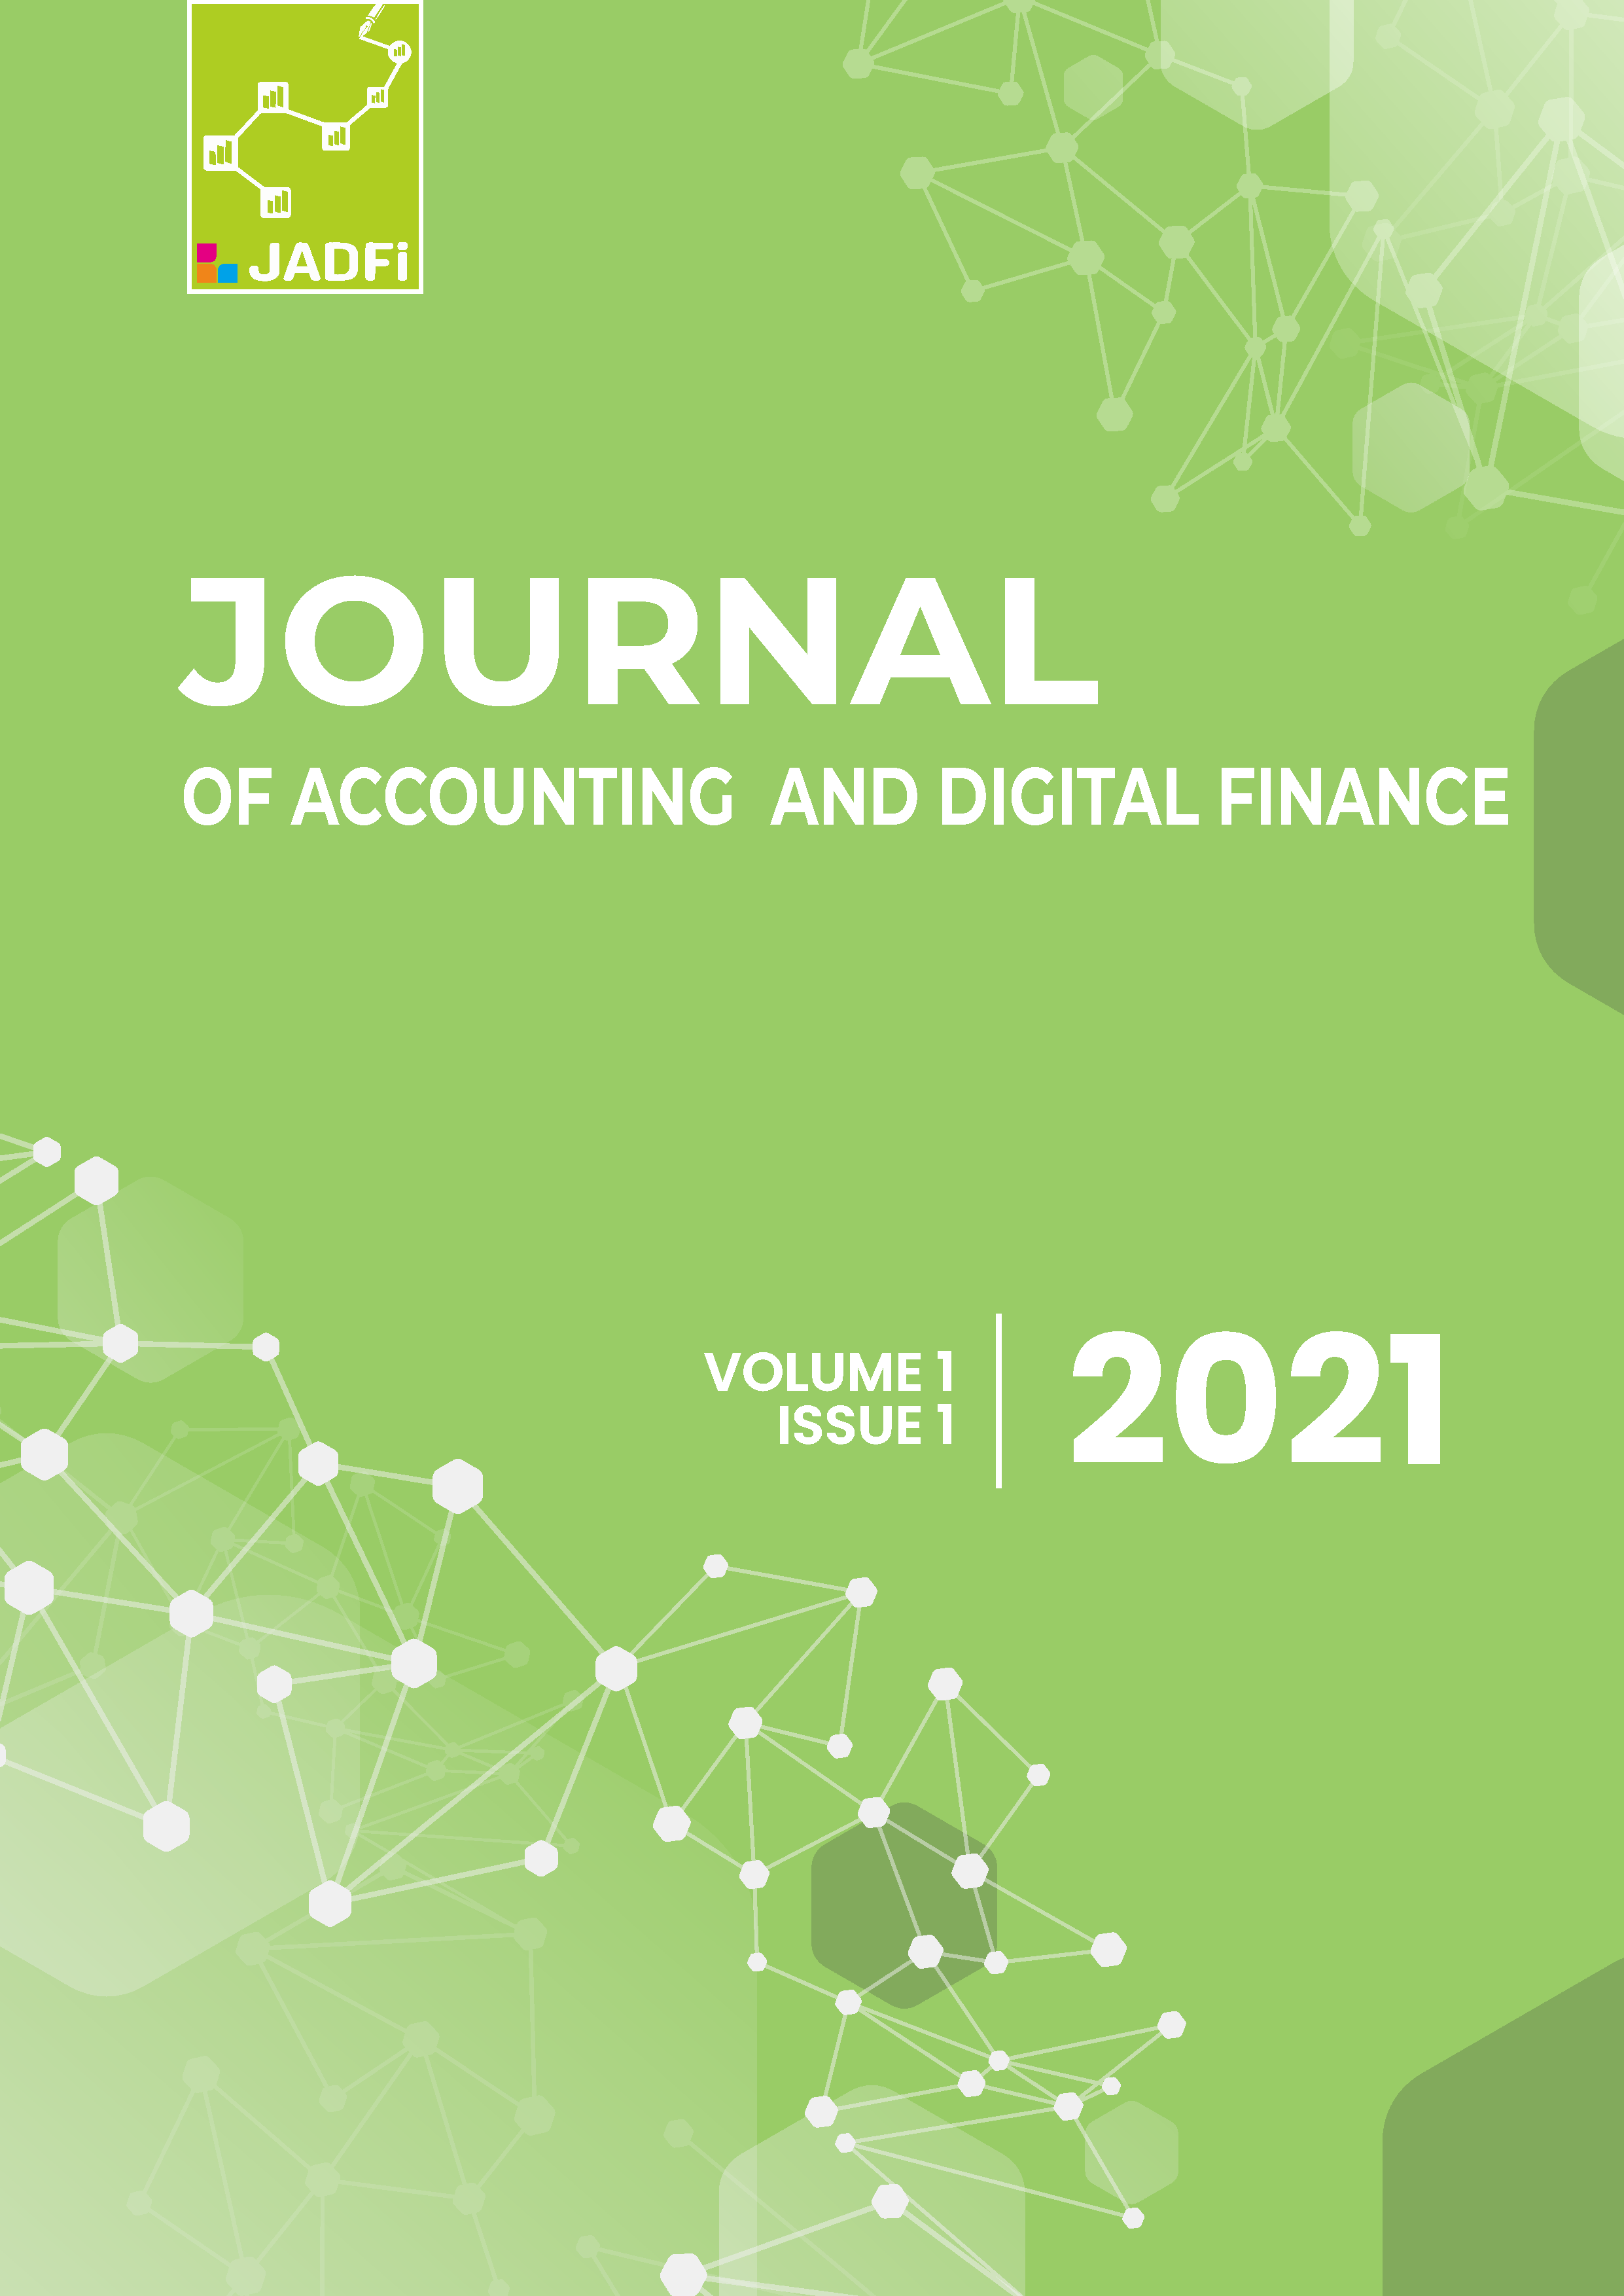 View Vol. 1 No. 1 (2021): Journal of Accounting and Digital Finance